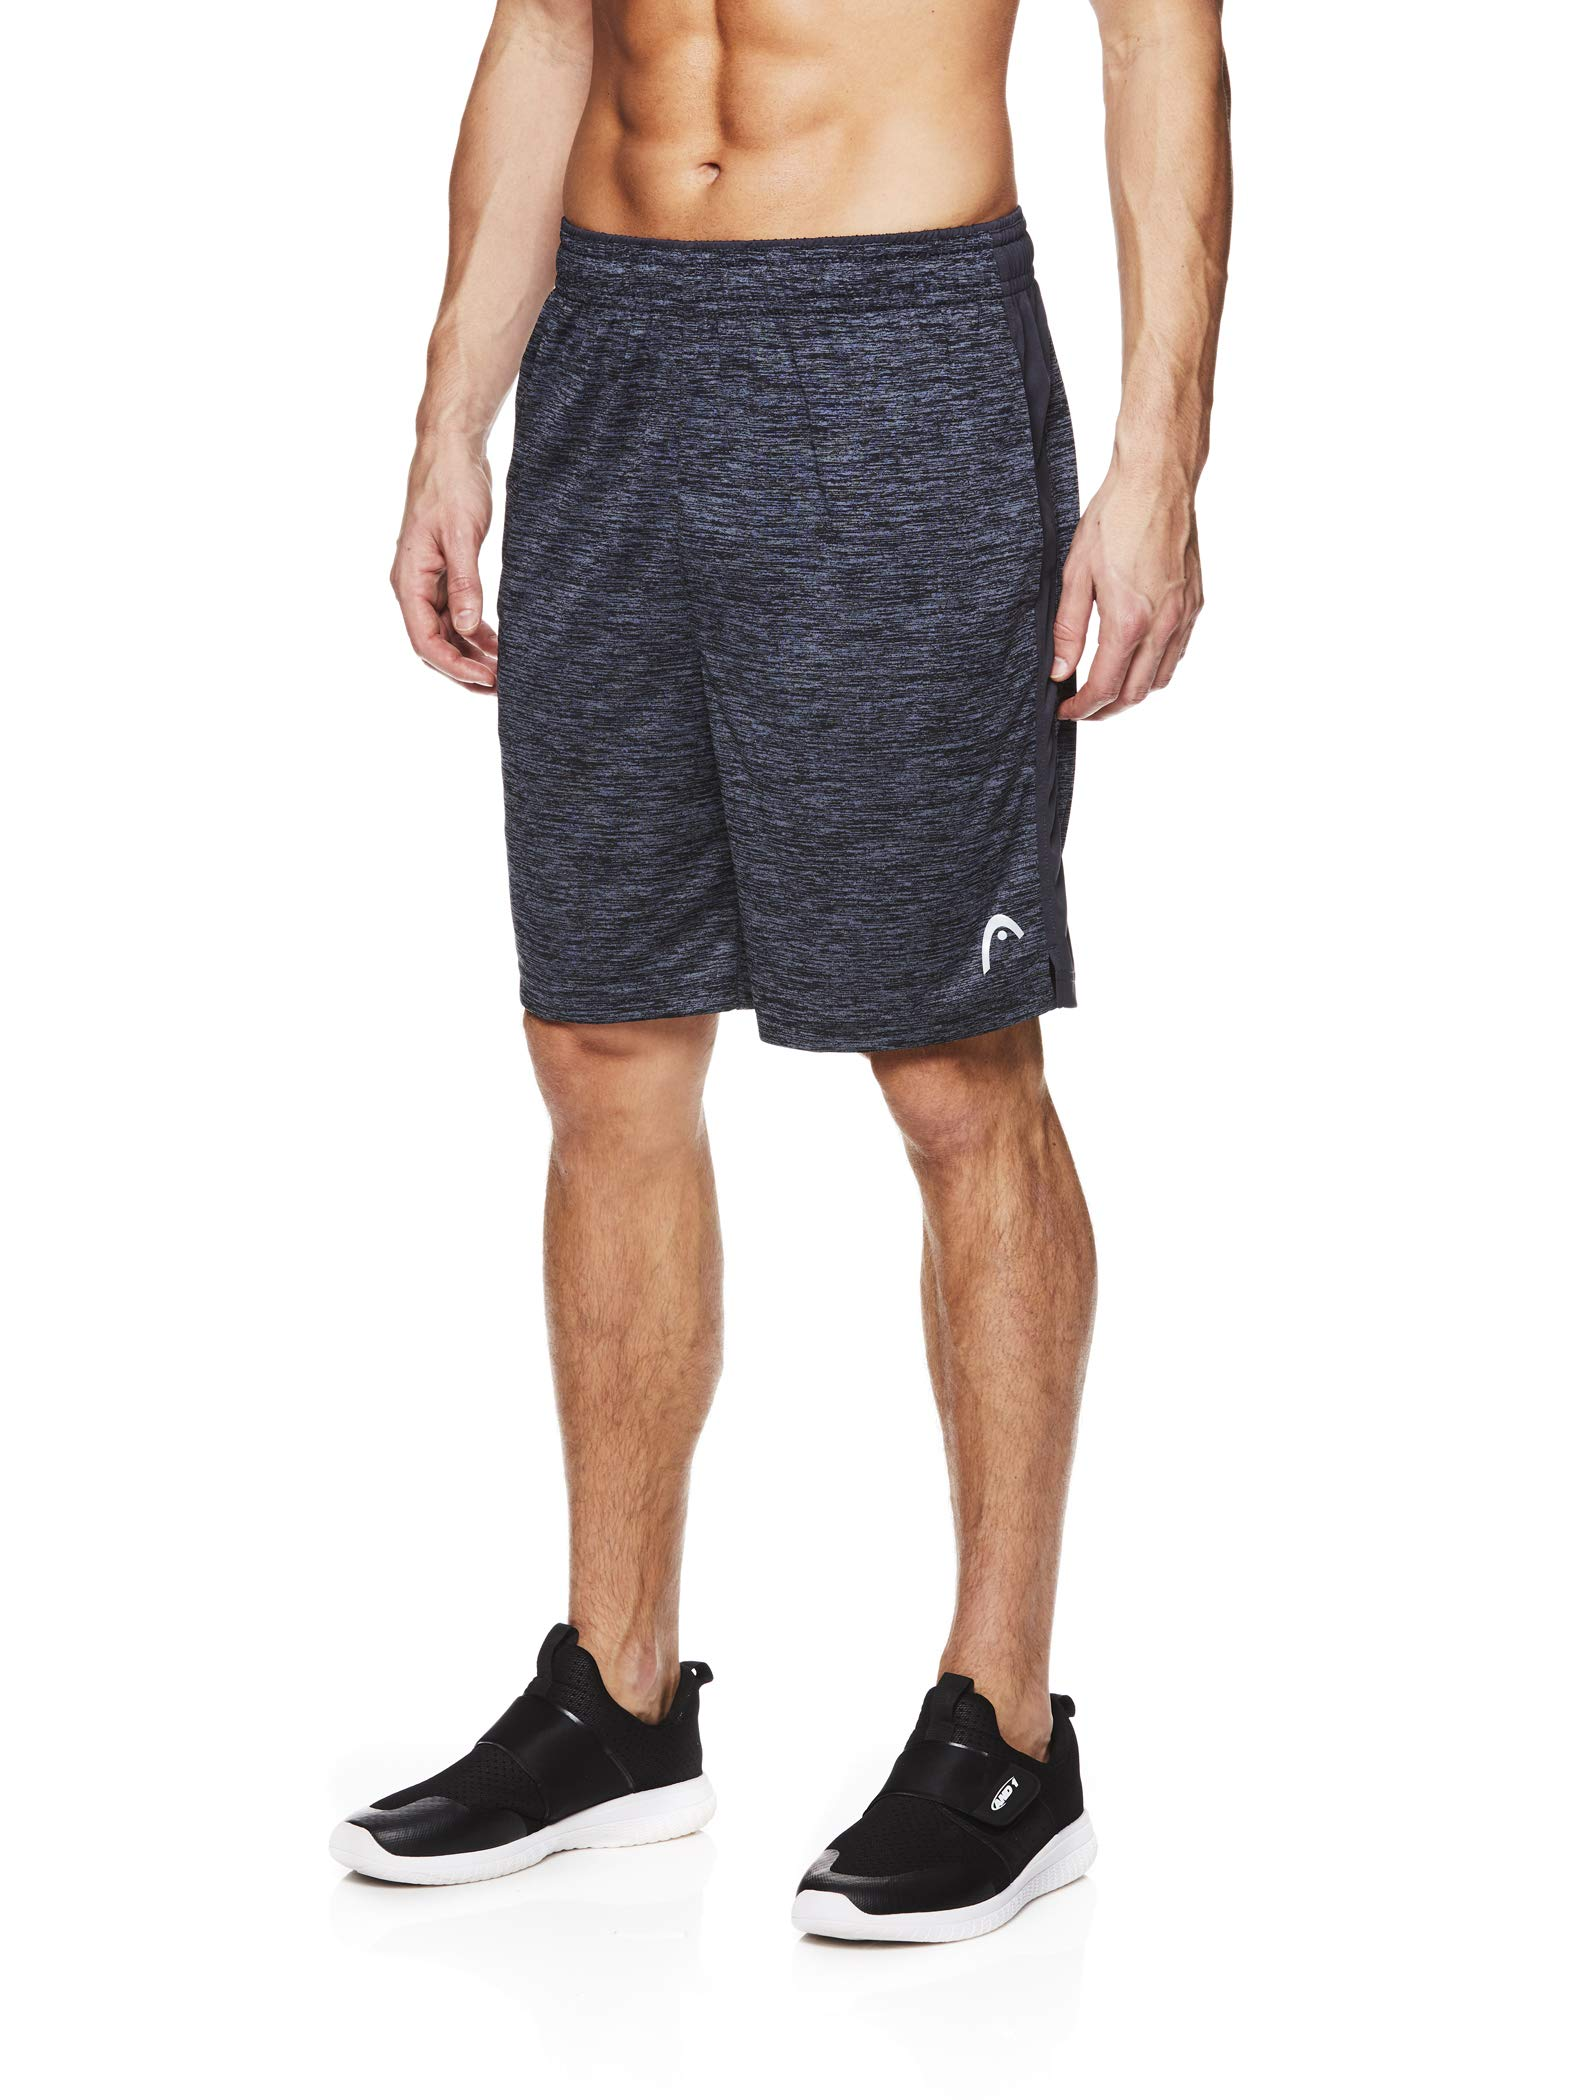 HEAD Men's Polyester Workout Gym & Running Shorts w/Elastic Waistband & Drawstring - Firestarter Chrome Heather Grey, 2X